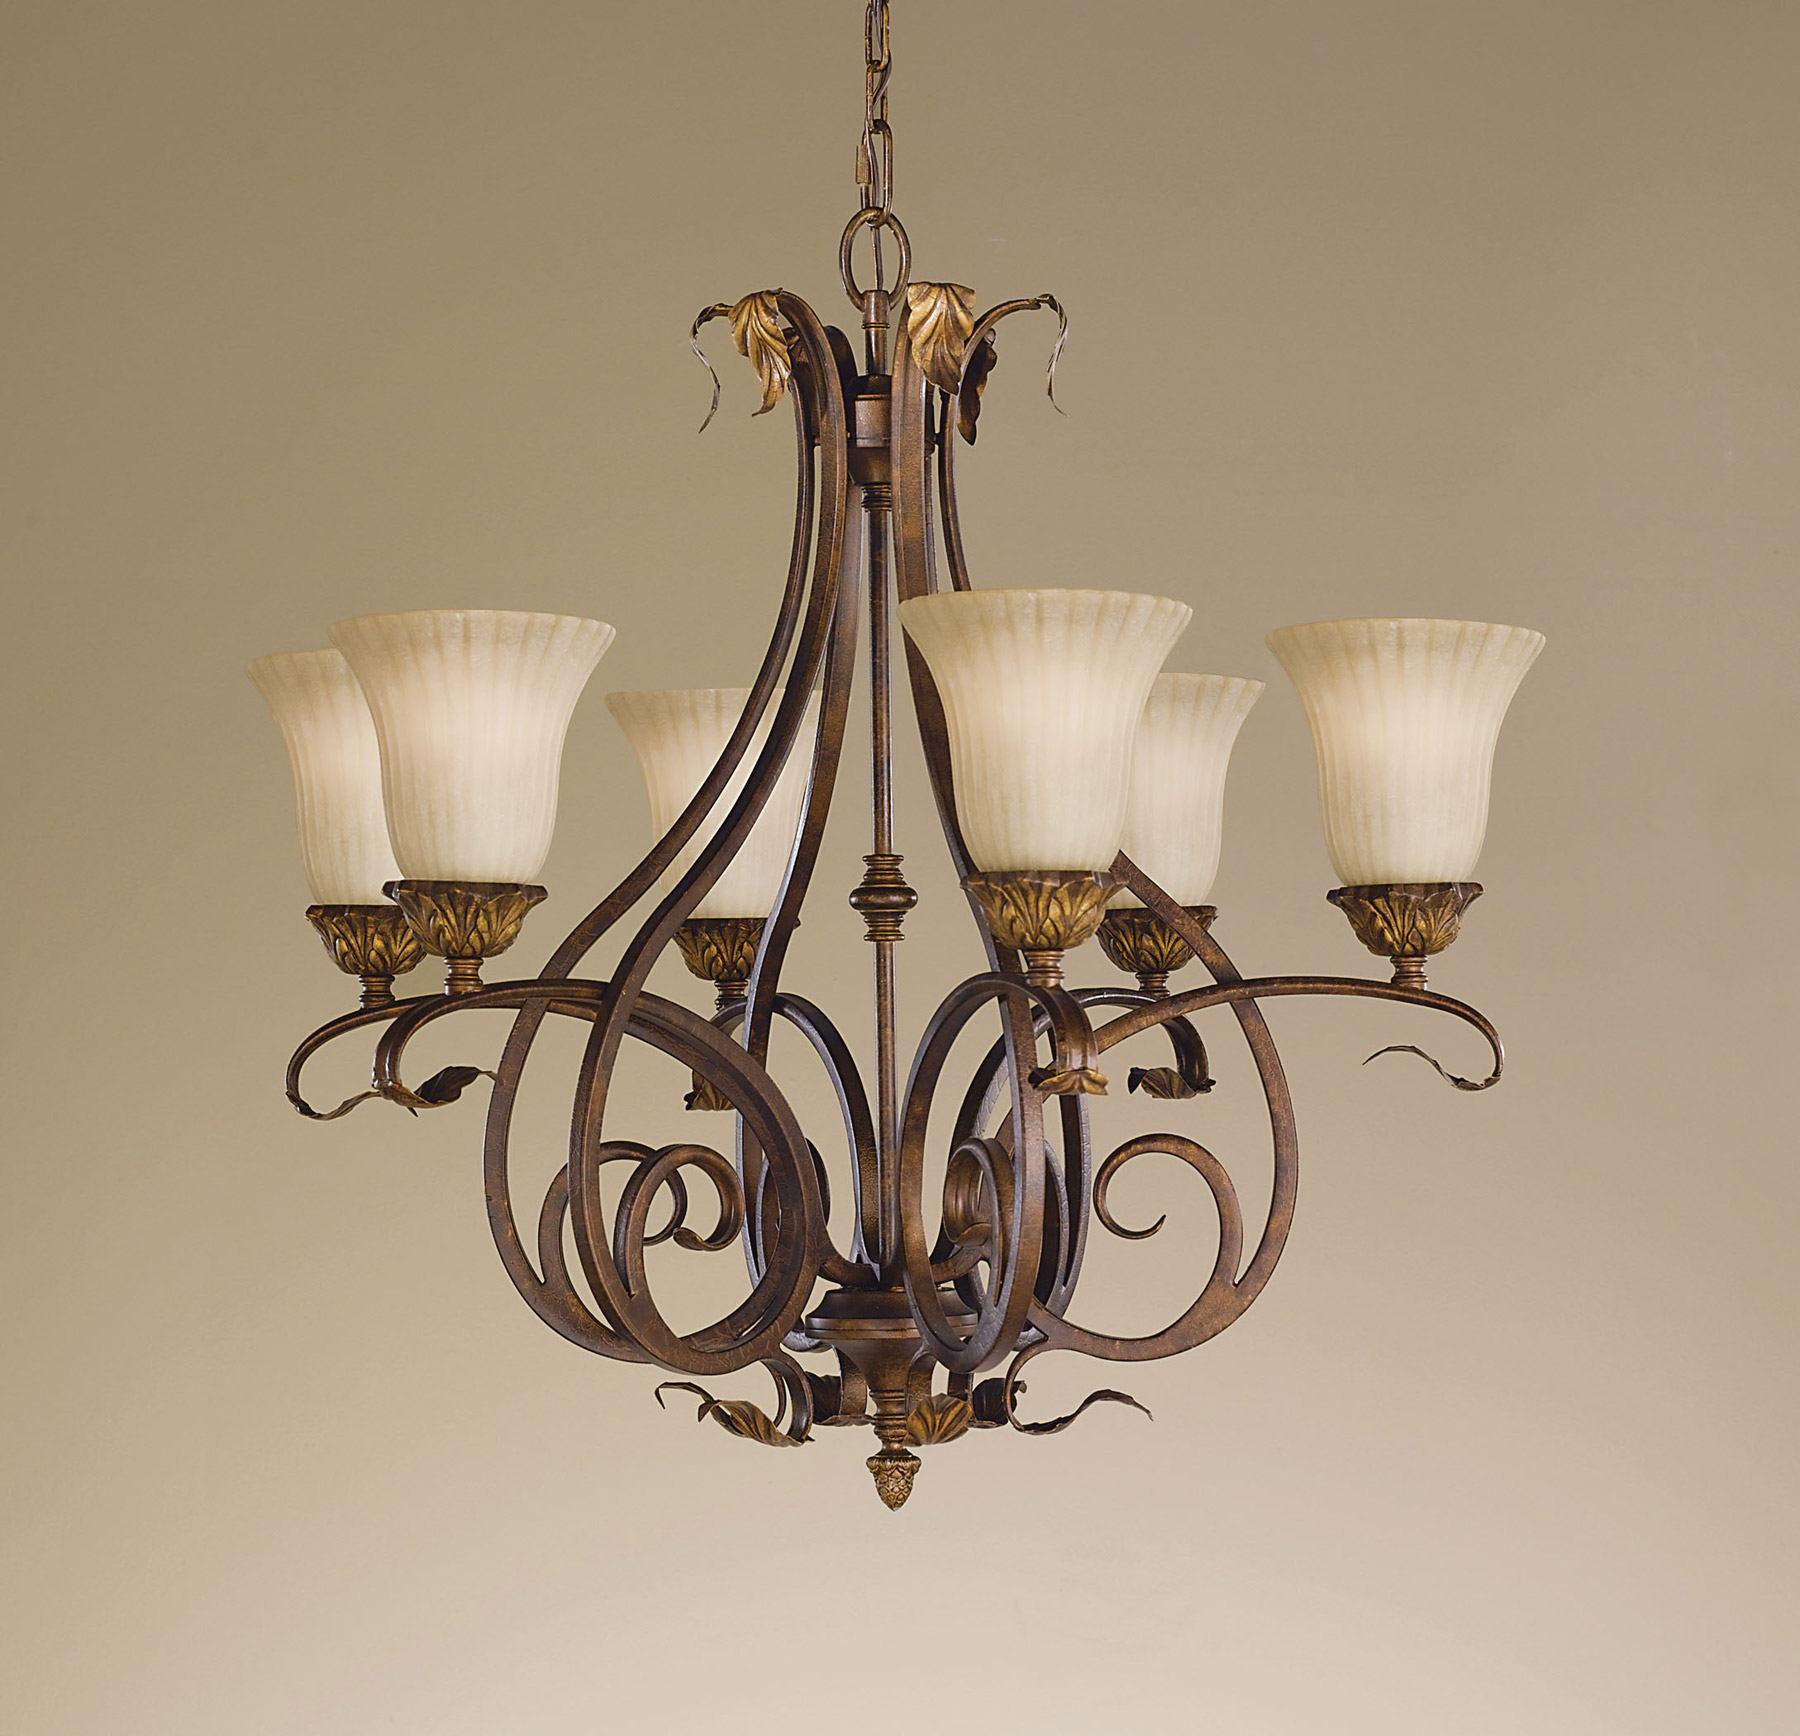 Murray Feiss Chandelier 6 Light: Murray Feiss F2076/6ATS Sonoma Valley Chandelier